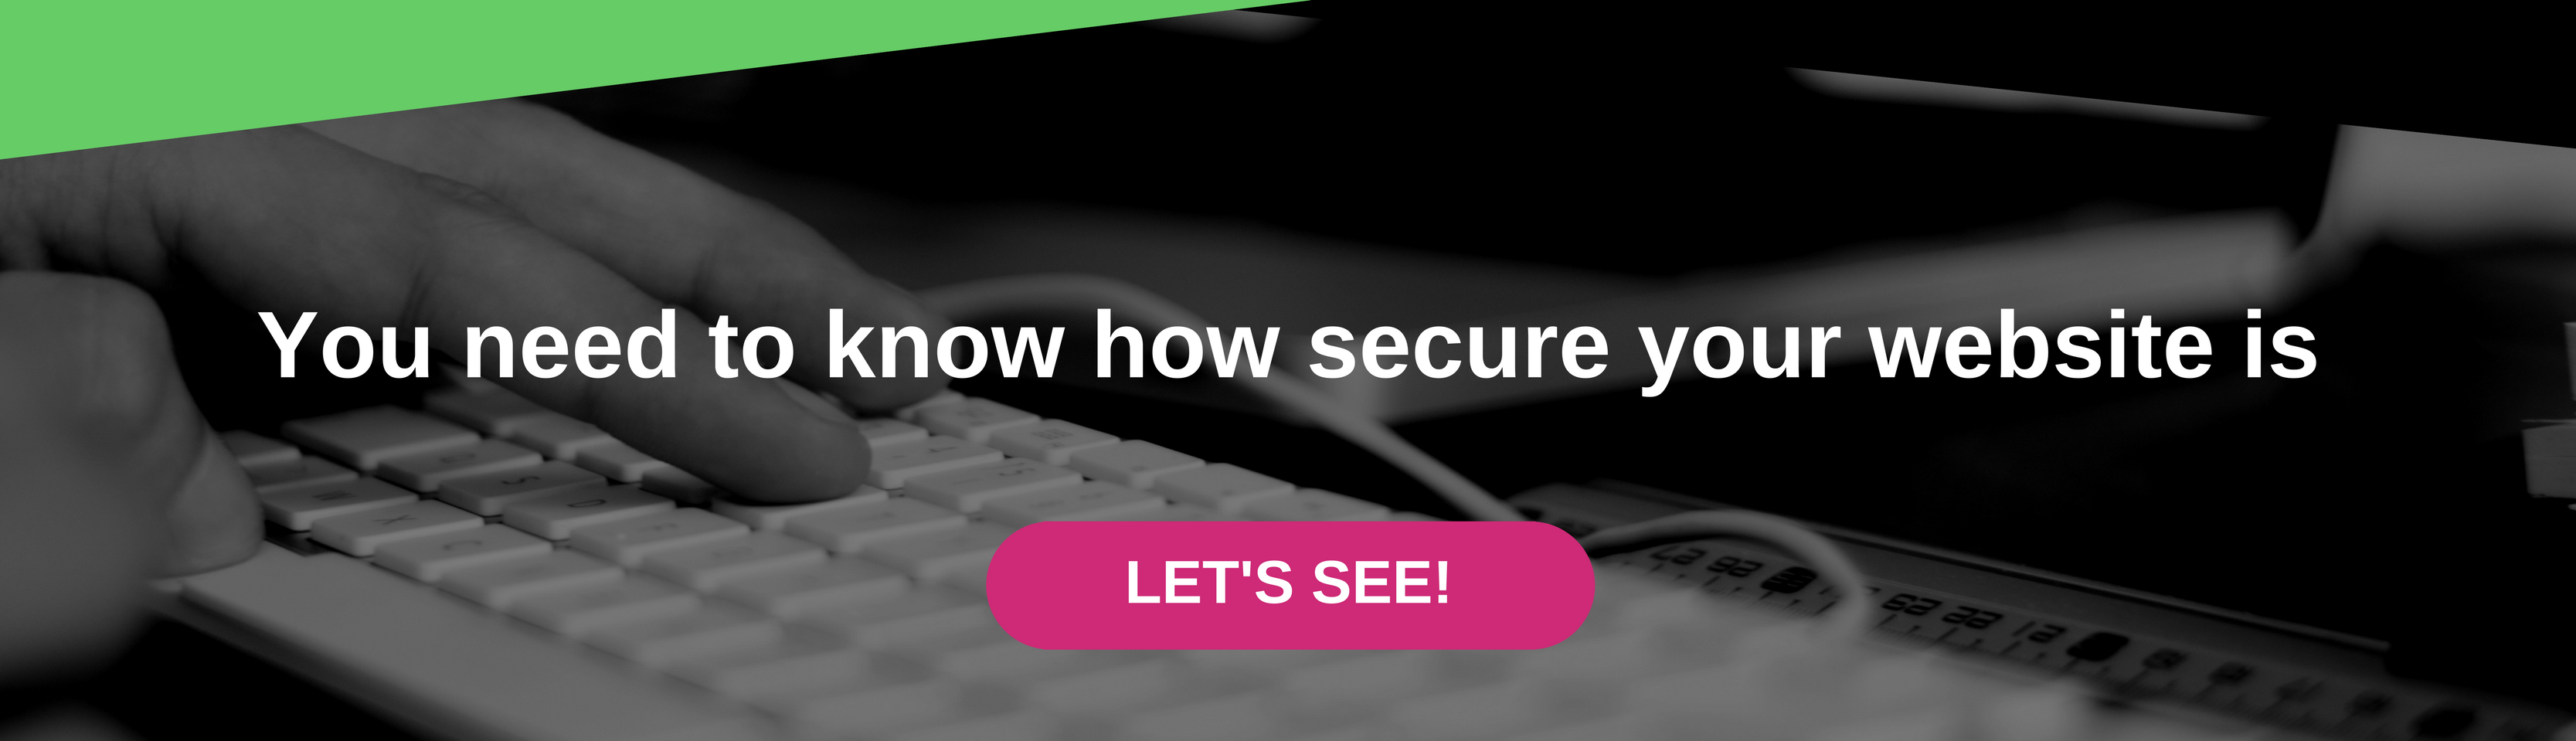 Know how secure your website is - ods